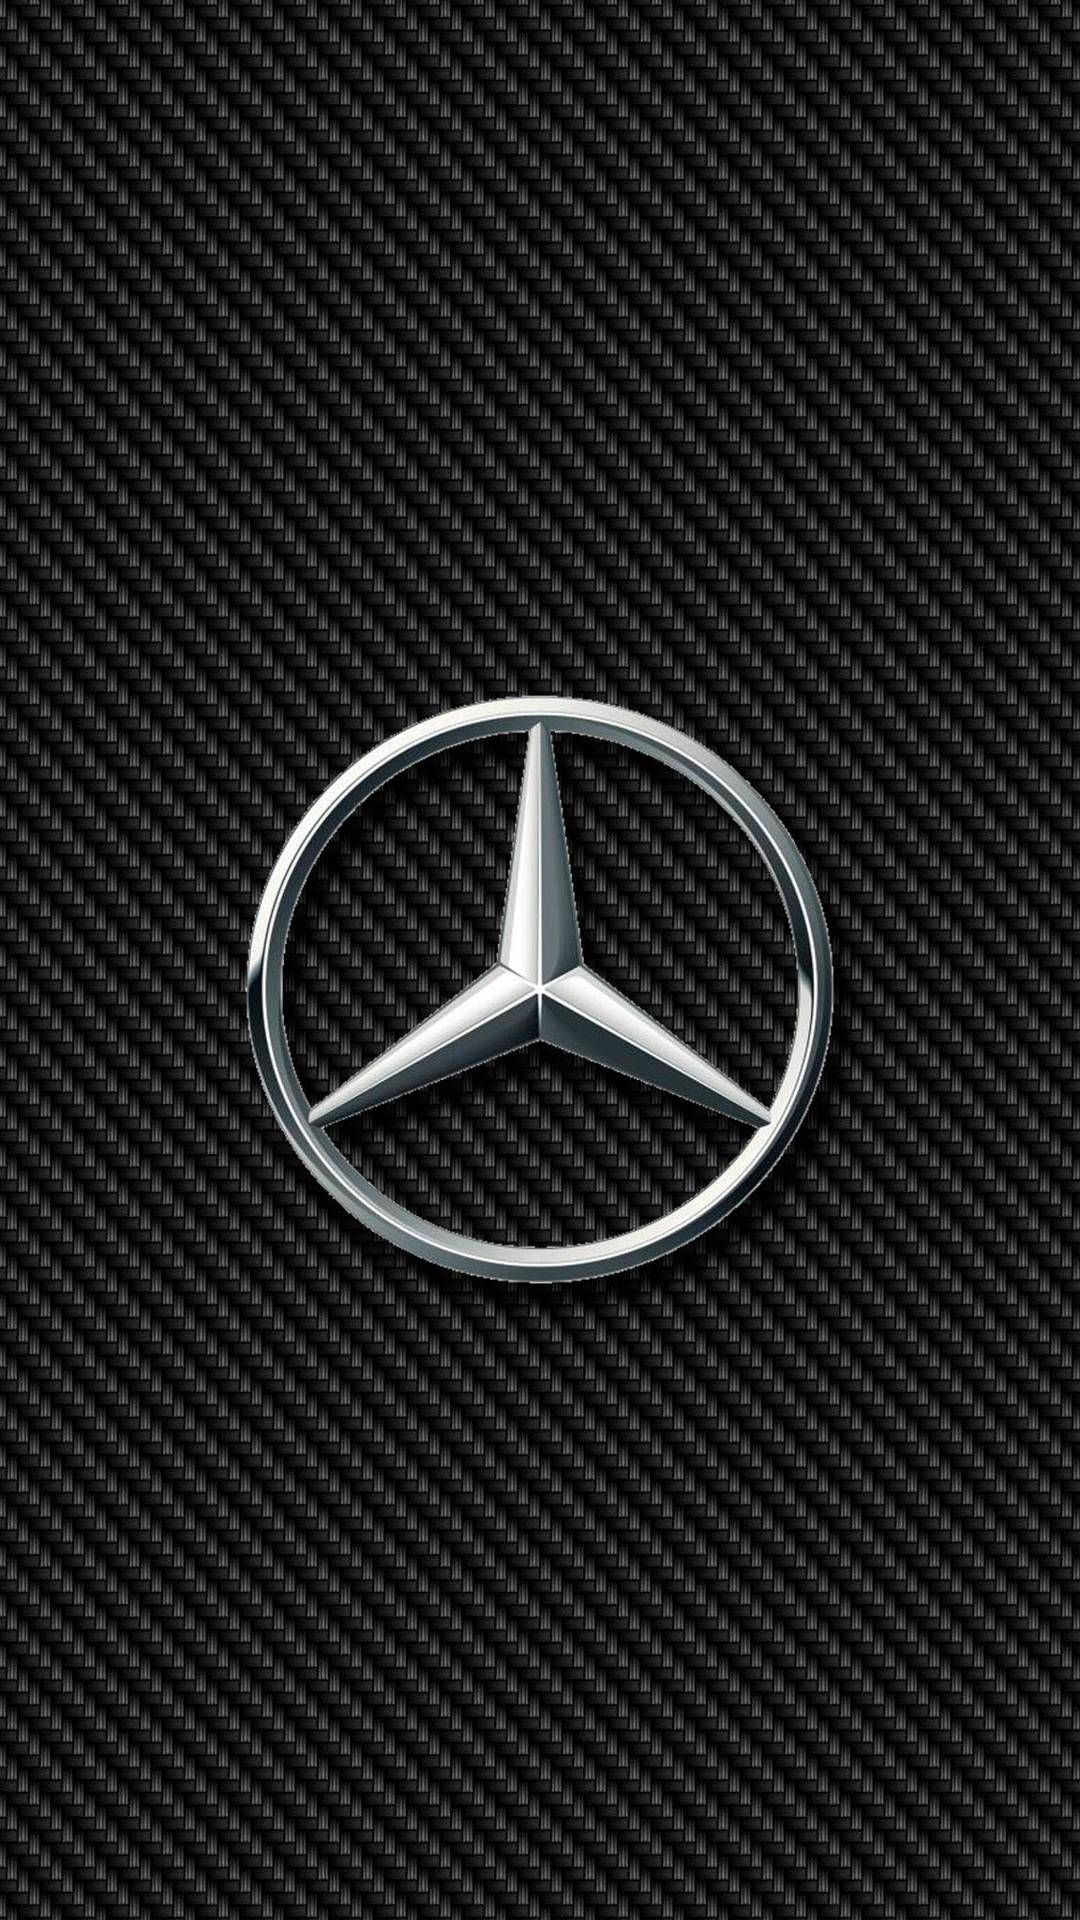 Pin By Christian Ferreira Parra On Fonfo De Pantalla In 2020 Mercedes Wallpaper Mercedes Benz Wallpaper Mercedes